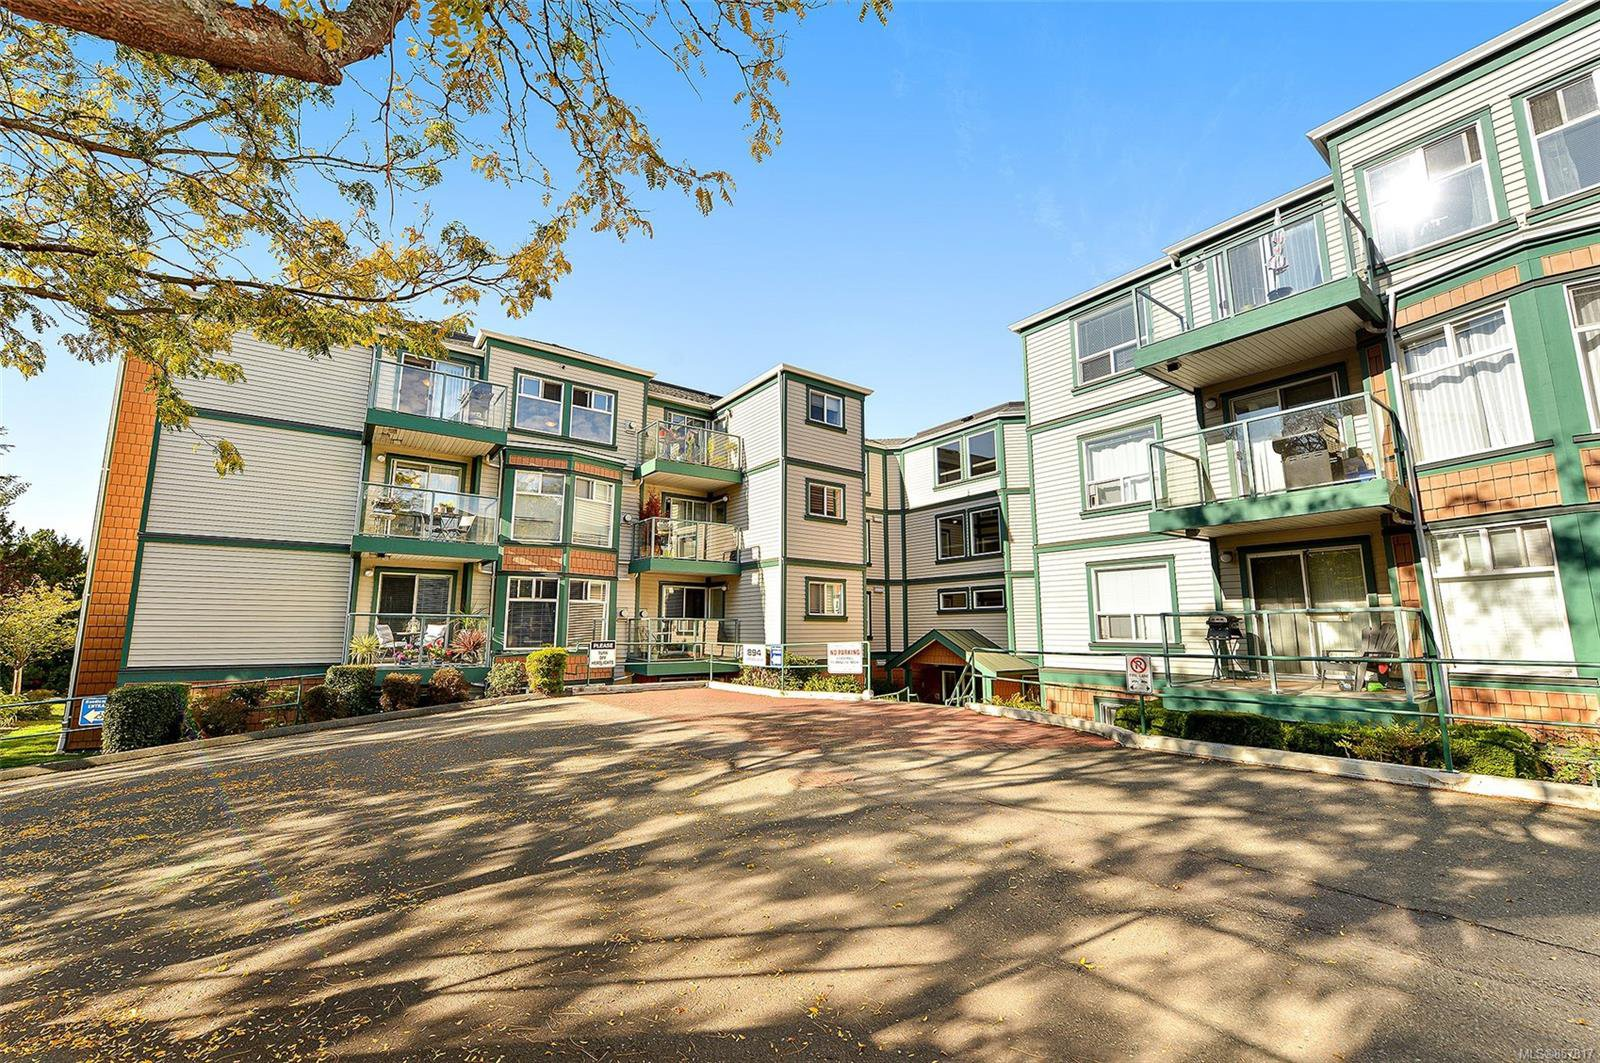 Main Photo: 403 894 Vernon Ave in : SE Swan Lake Condo for sale (Saanich East)  : MLS®# 857817